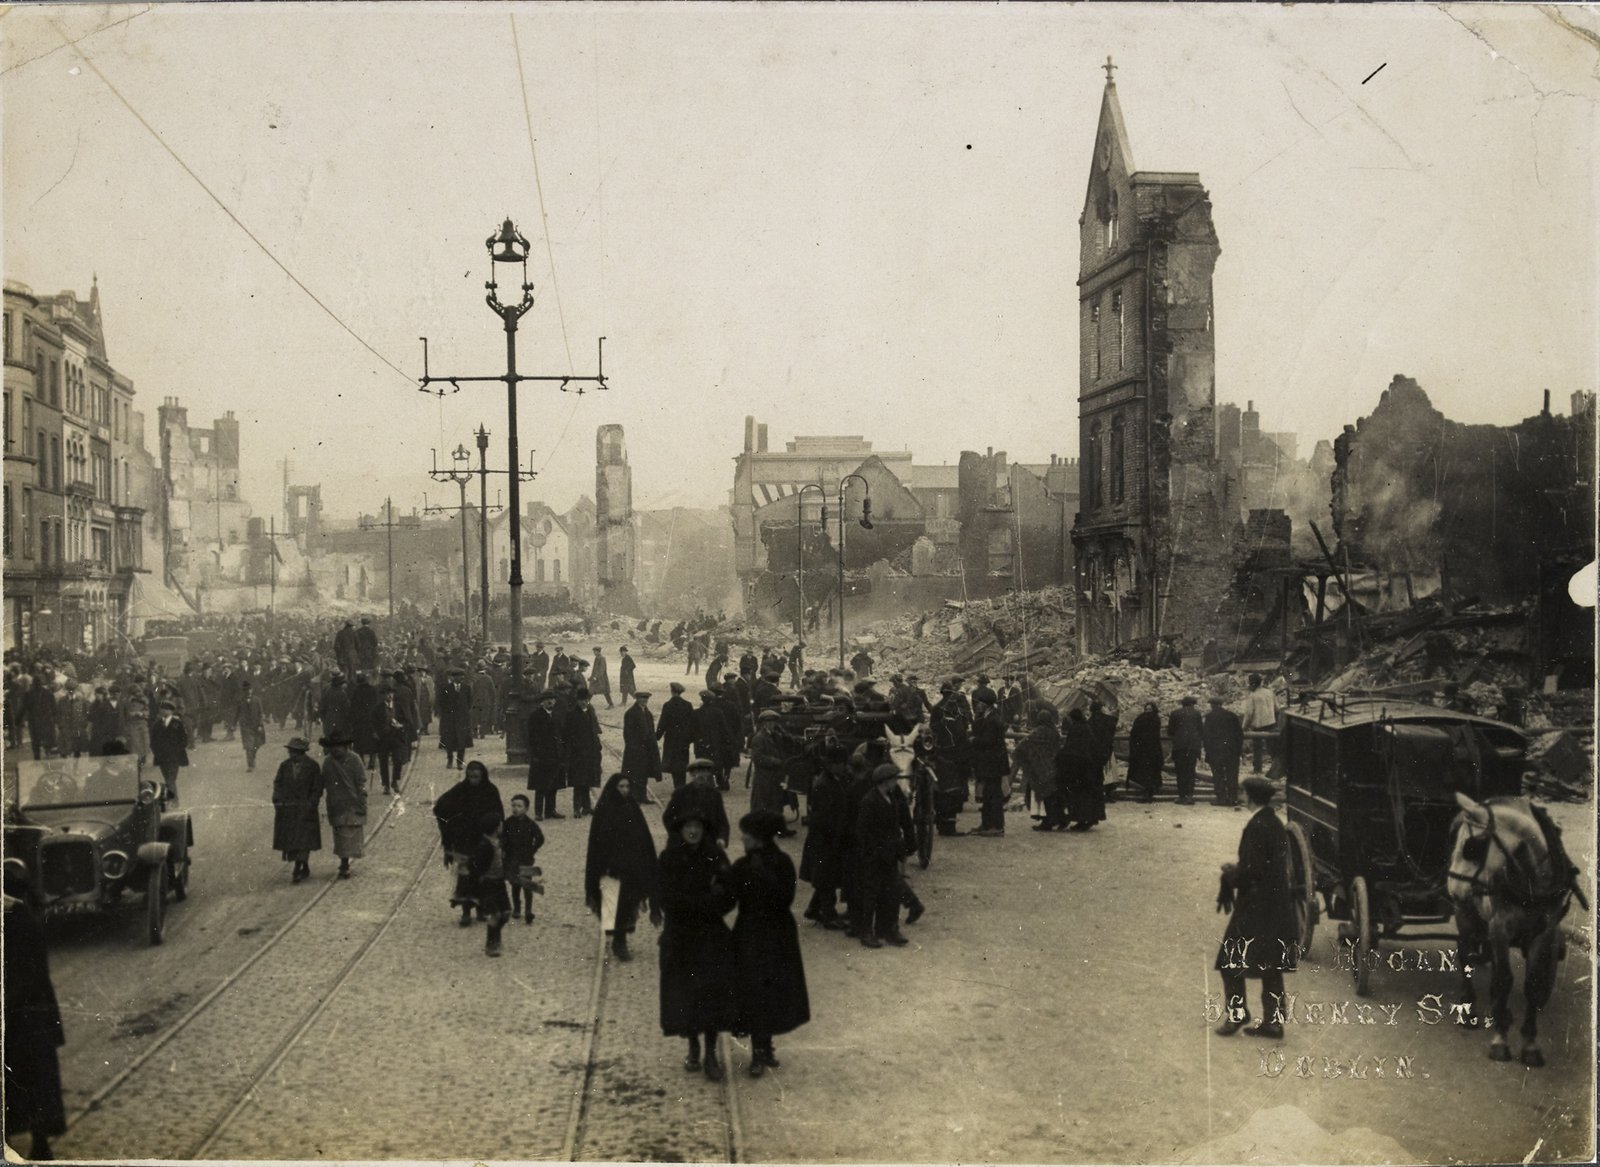 Image - Crowds gather amid the ruins, 13th of December, 1920. Image courtesy of the National Library of Ireland